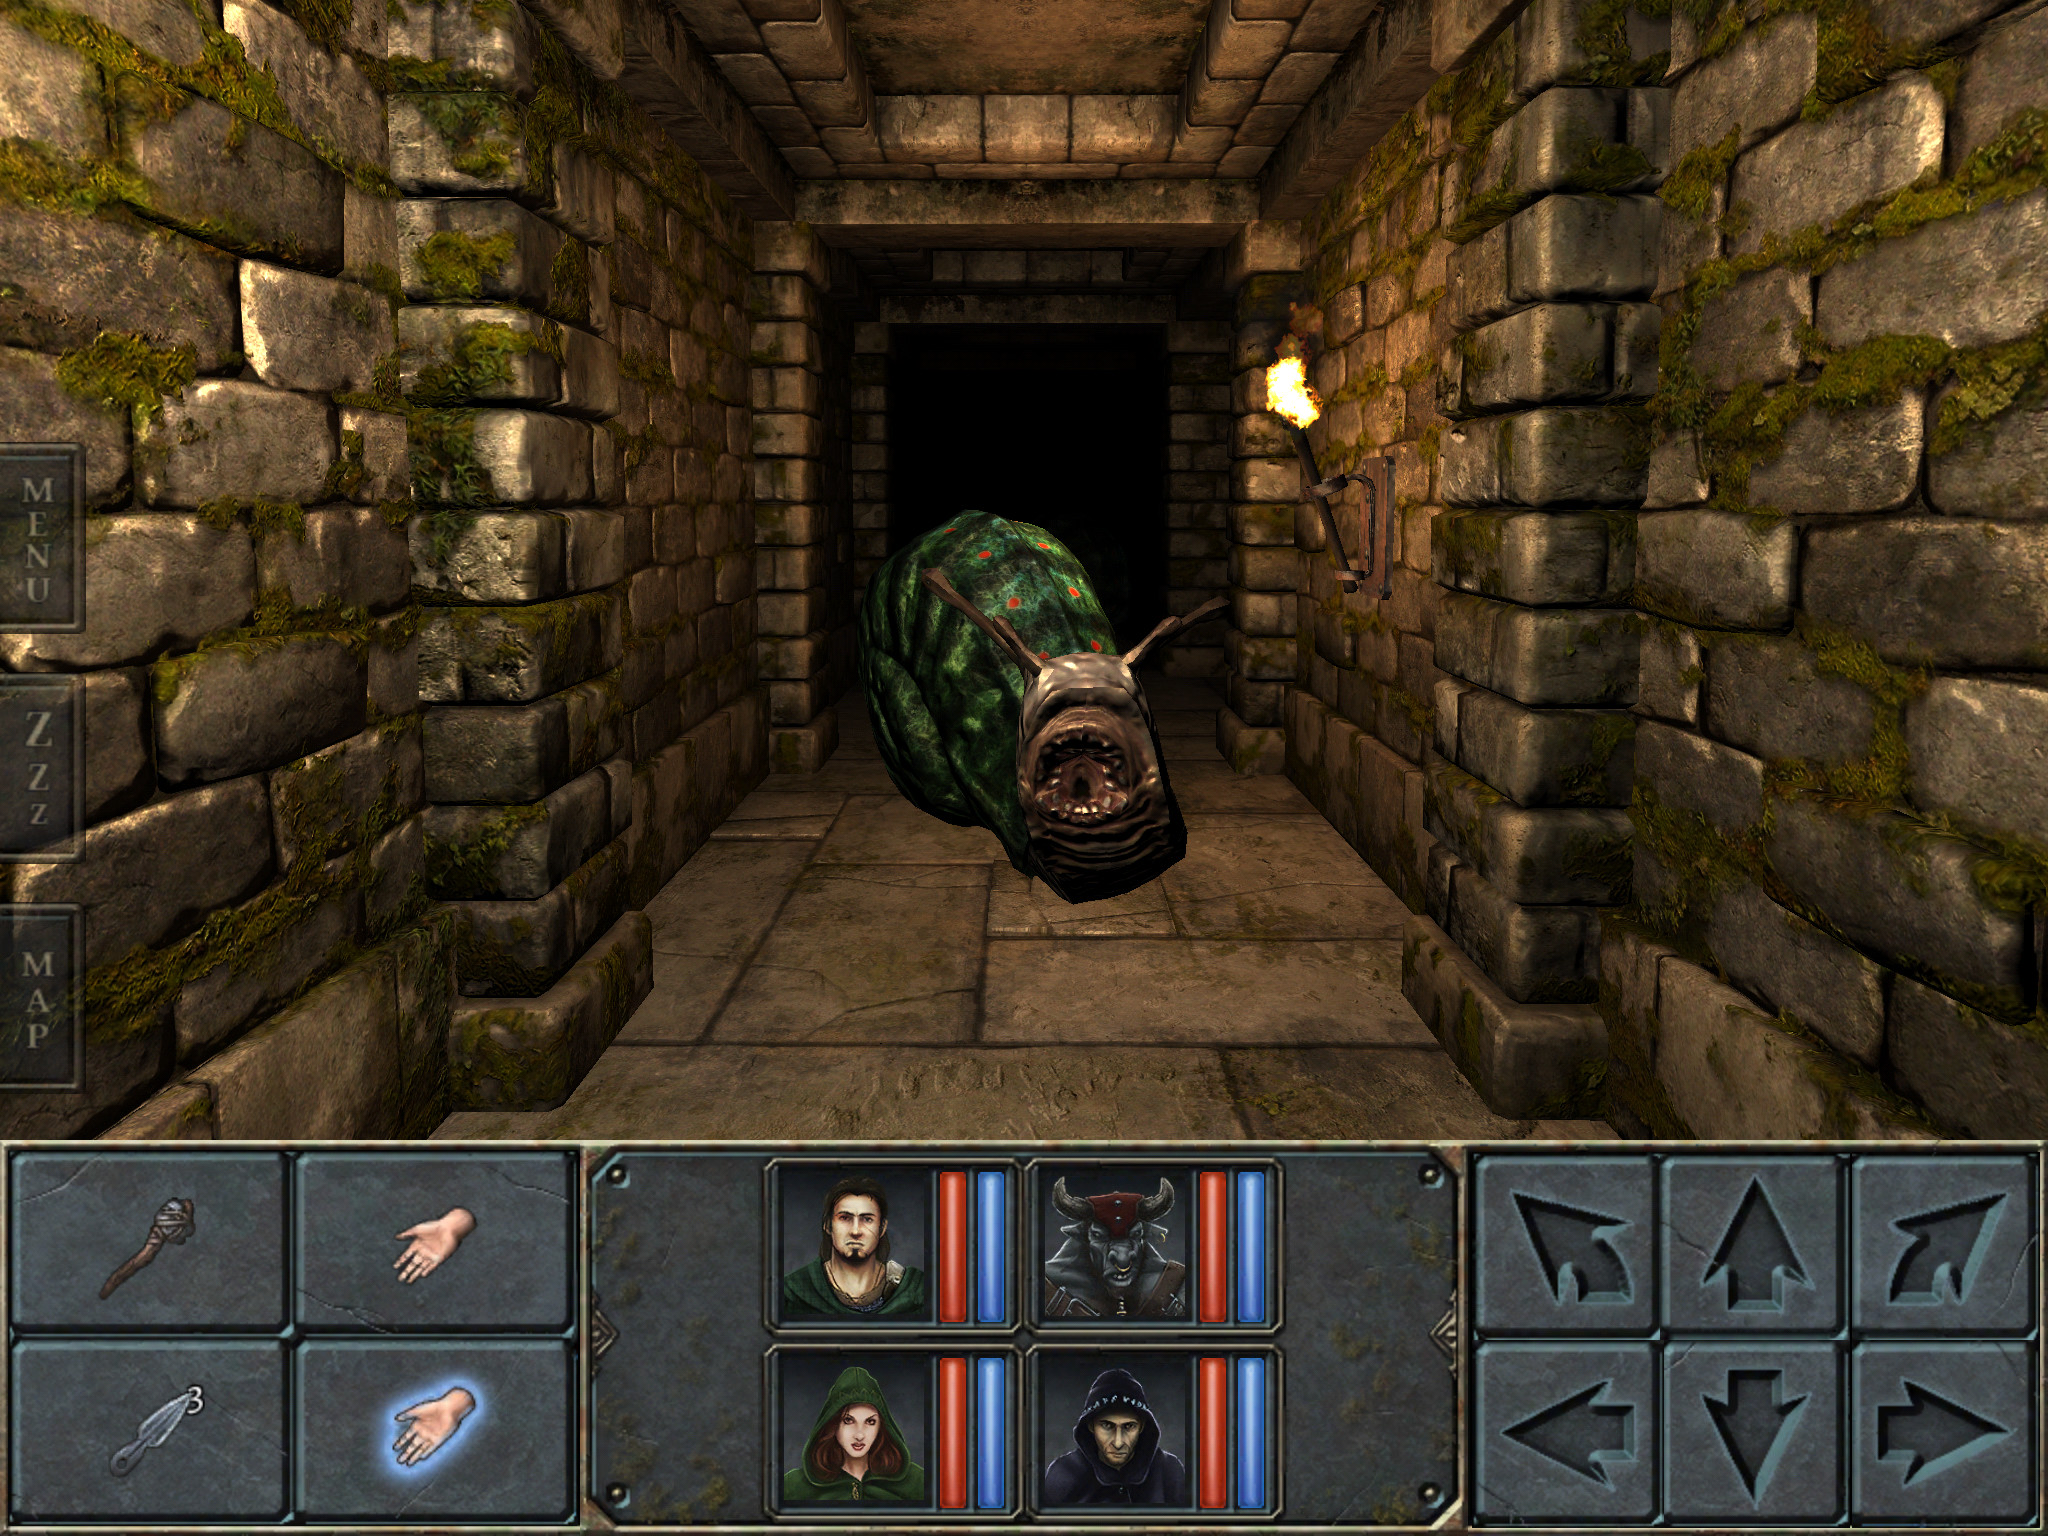 Old-school RPG Legend of Grimrock goes on sale for £1.99 / $1.99